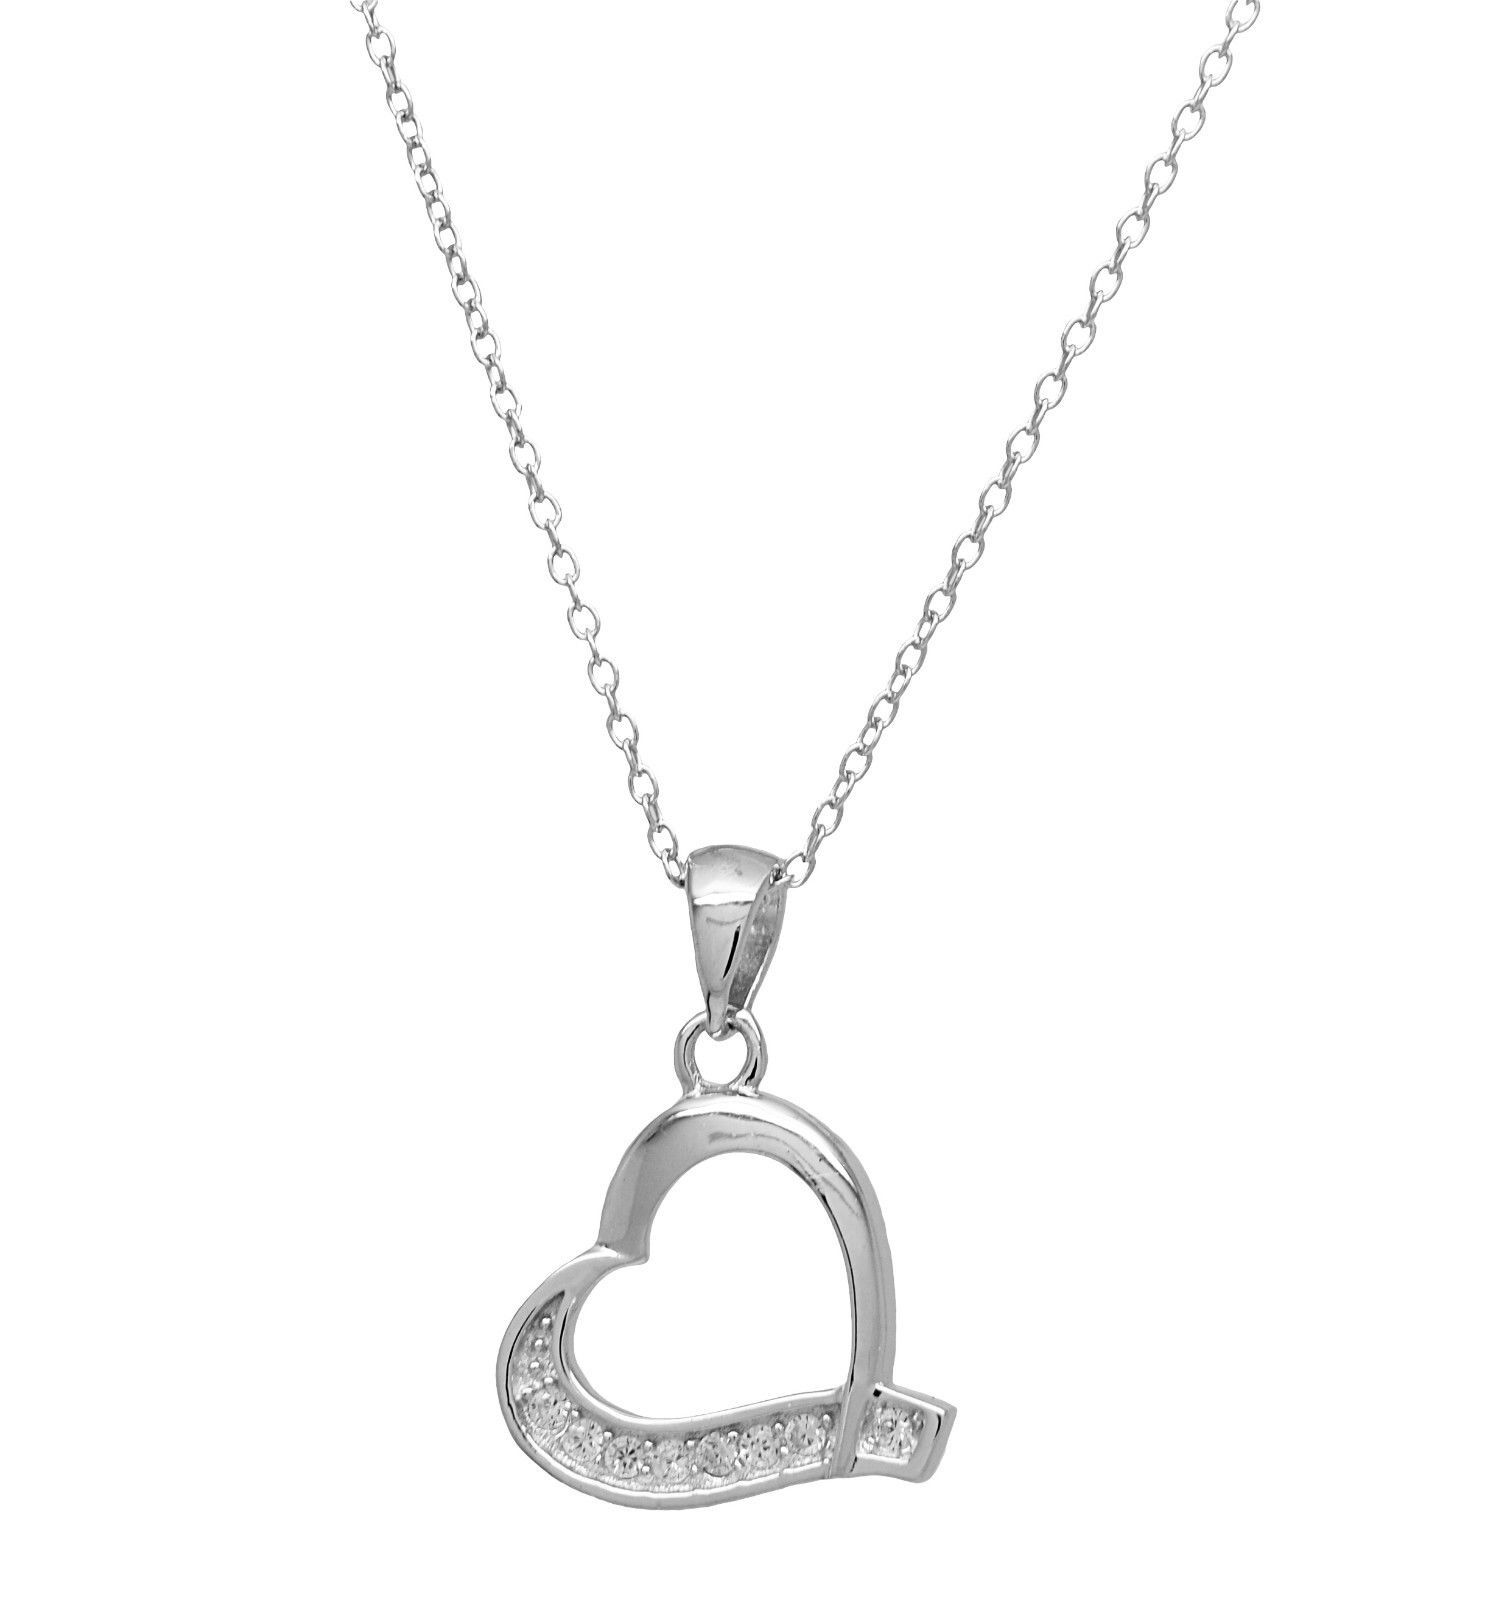 925 Sterling Silver Heart Cubic Zirconia Pendant